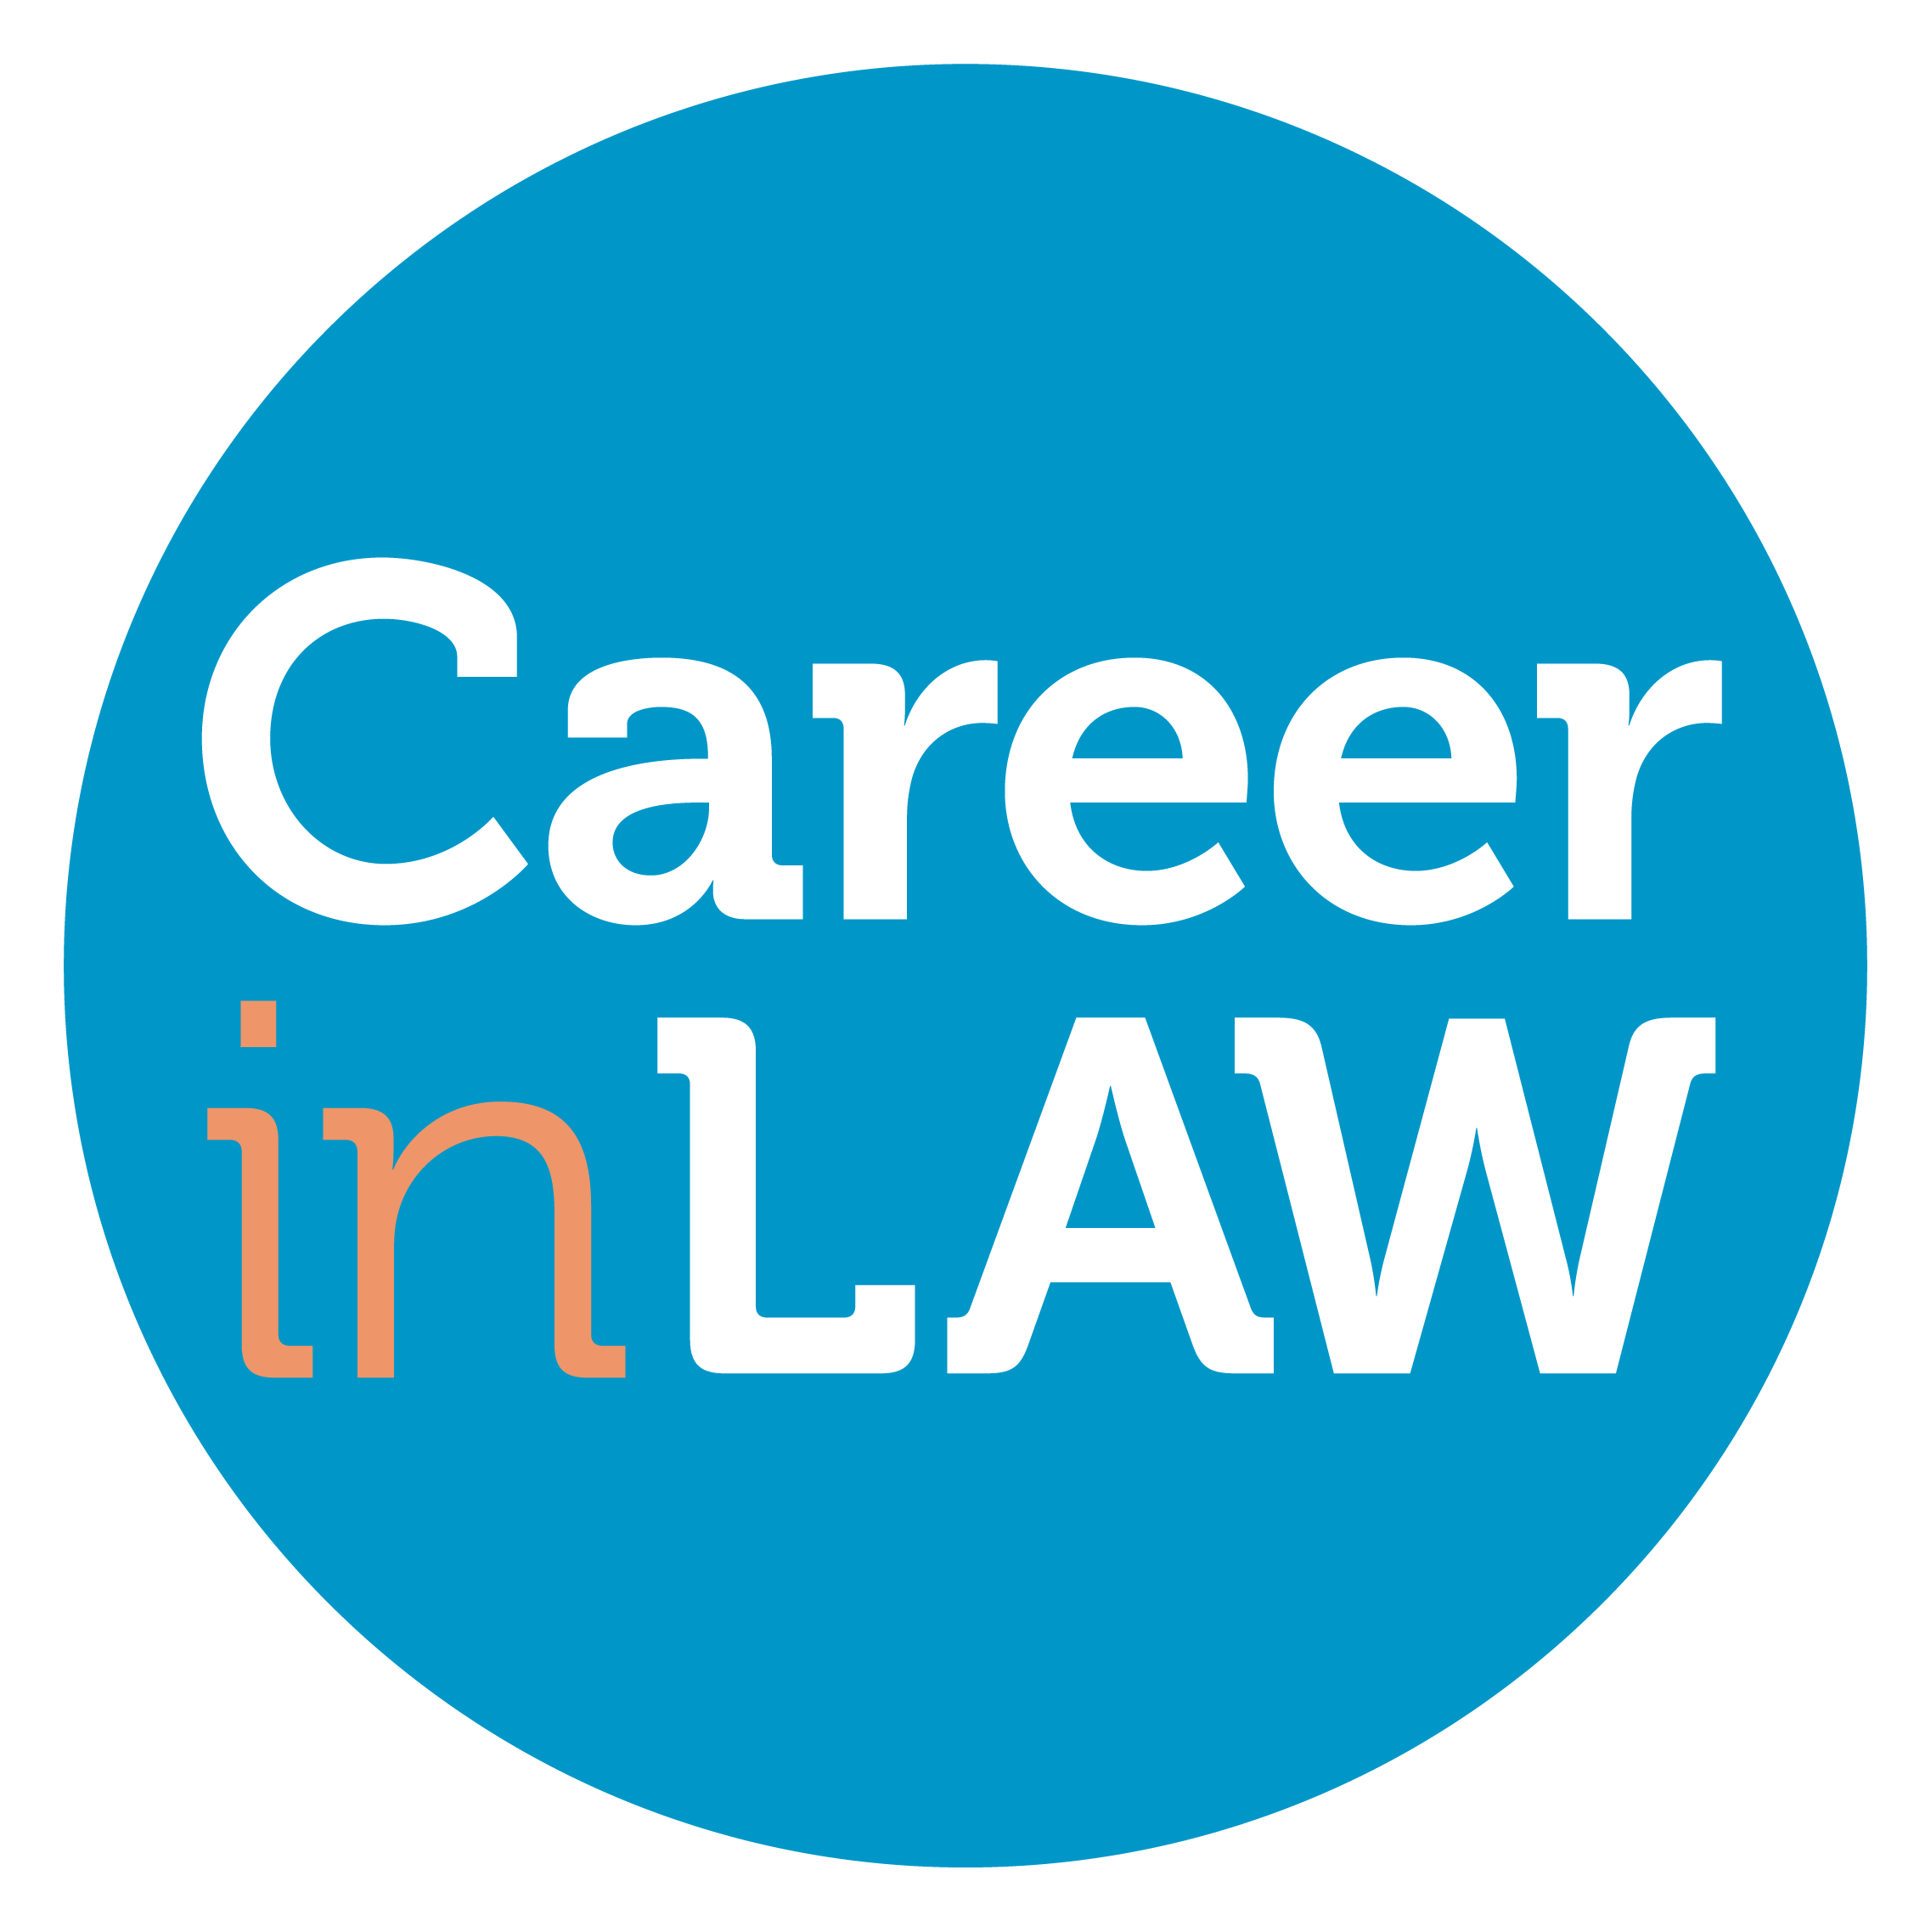 Career In Law image